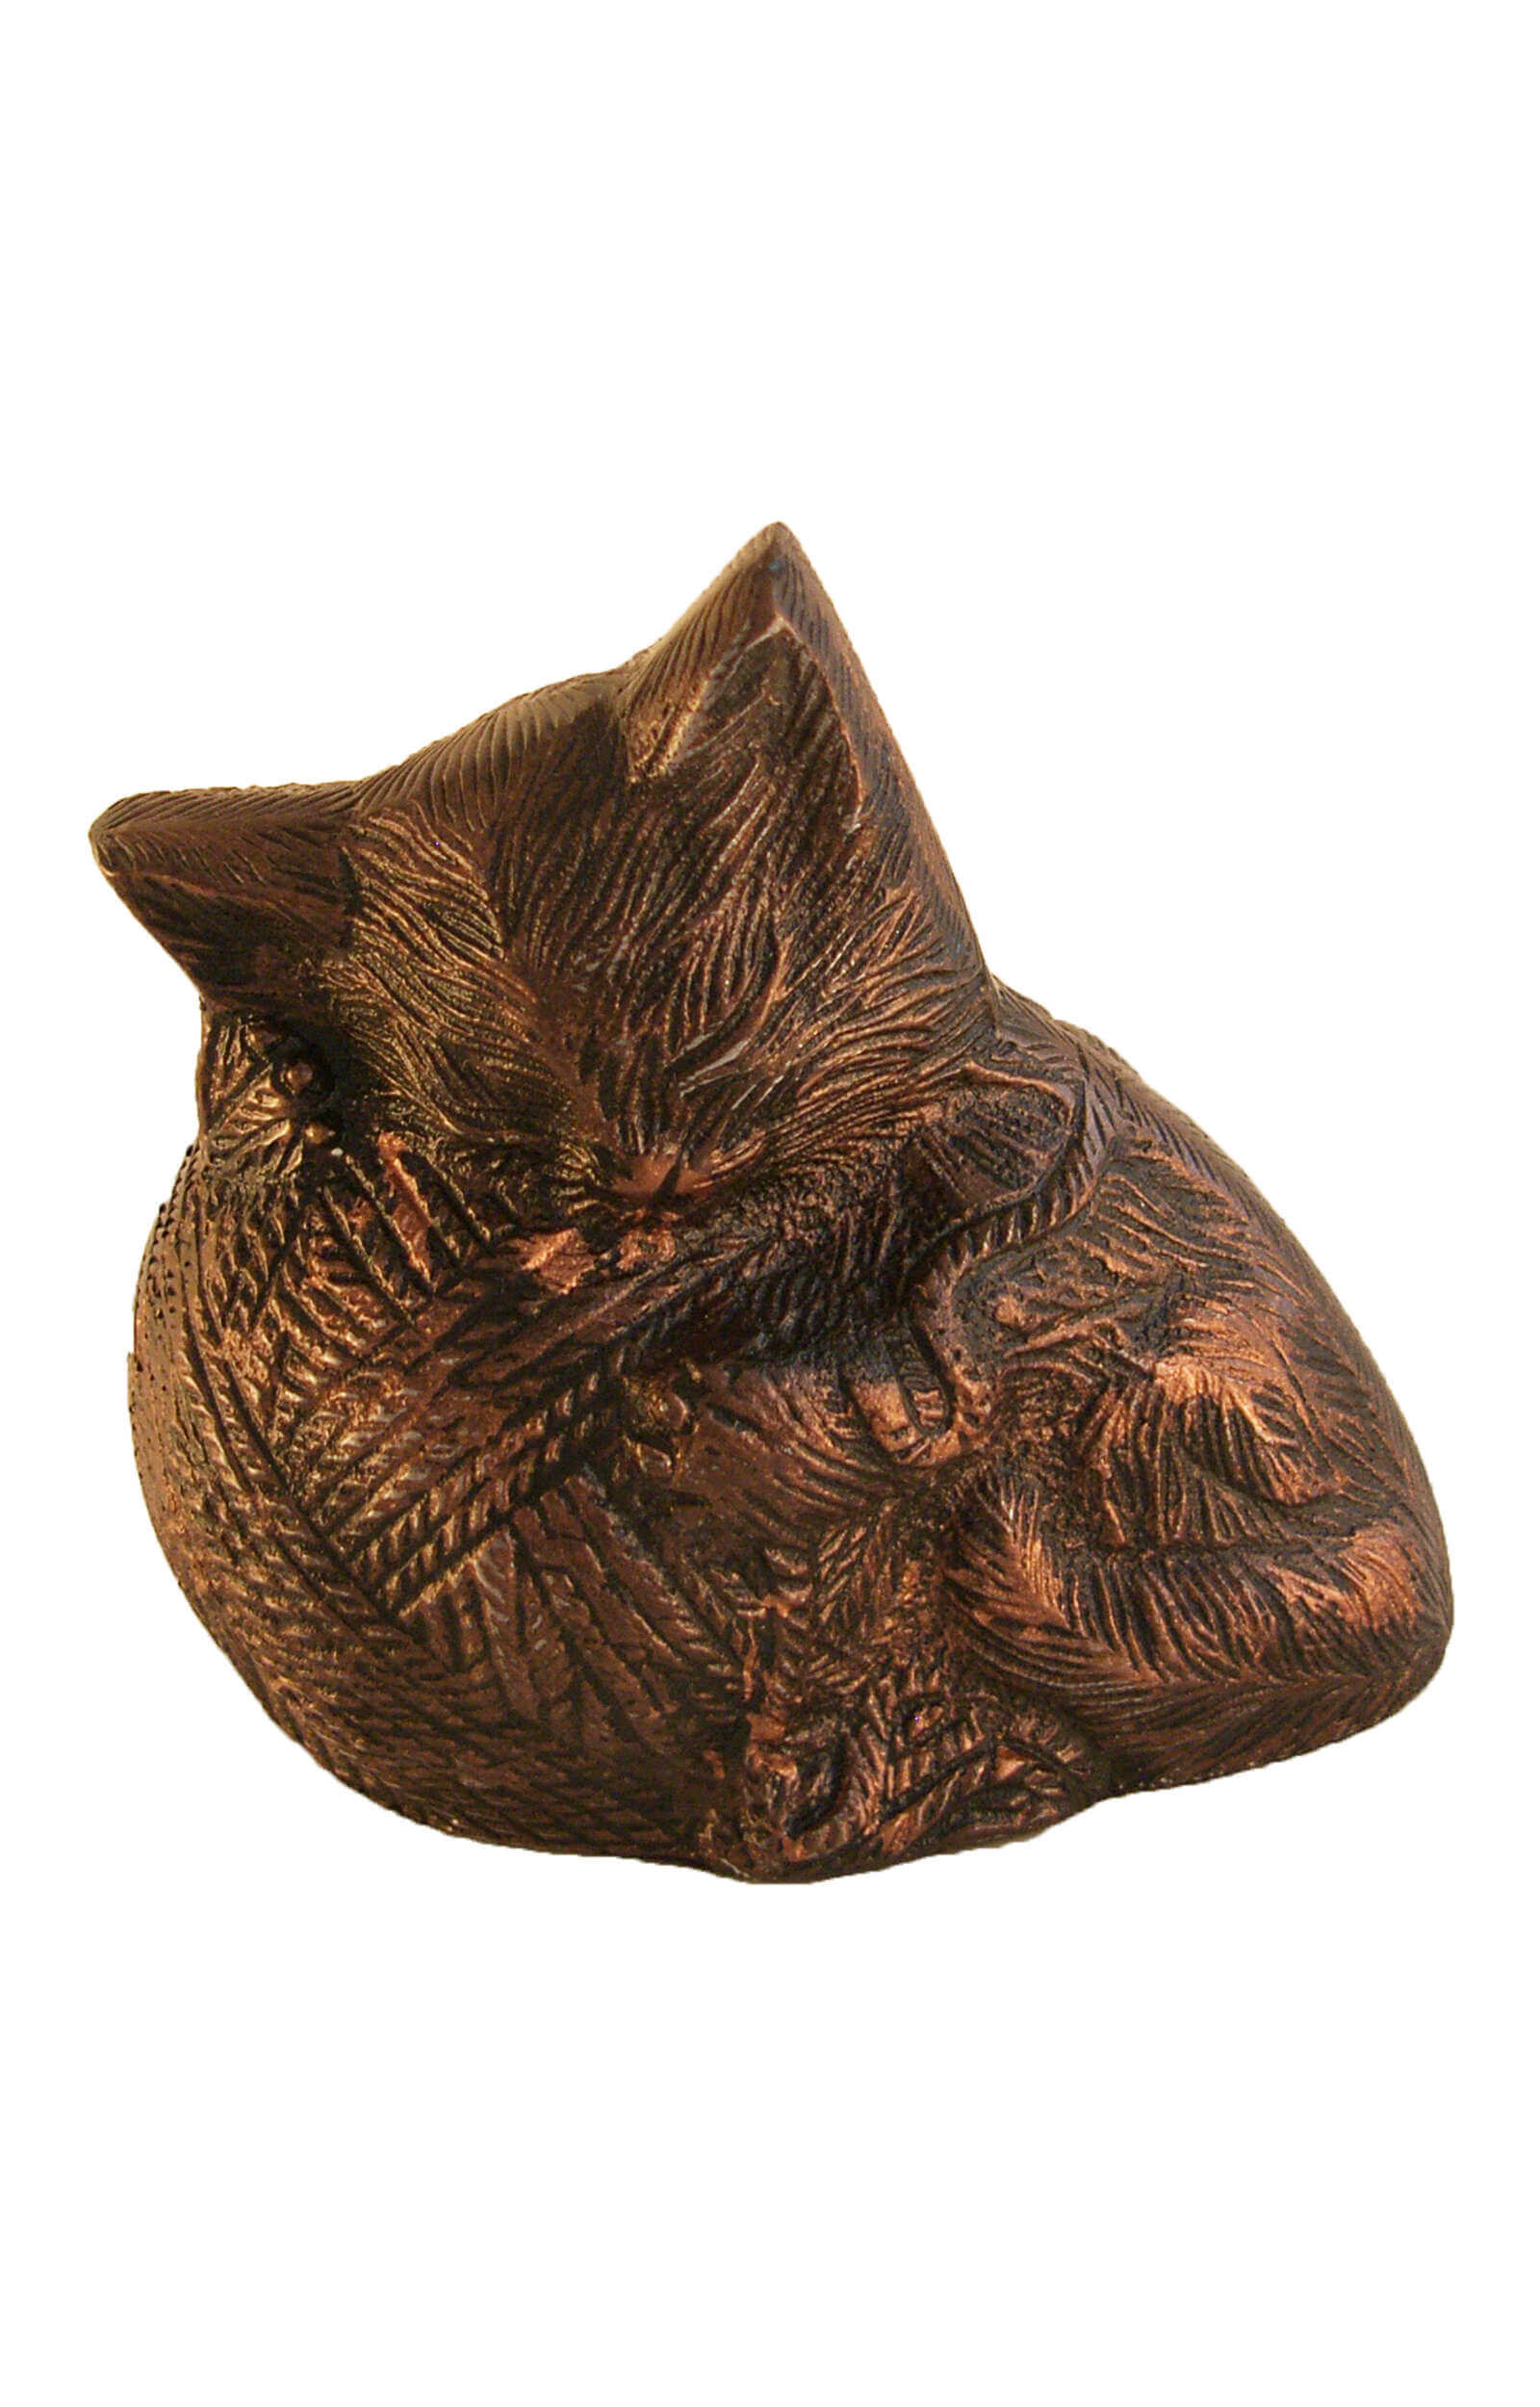 en TIB500A dark brown aluminium sleeping cat on wool yarn urn jgp